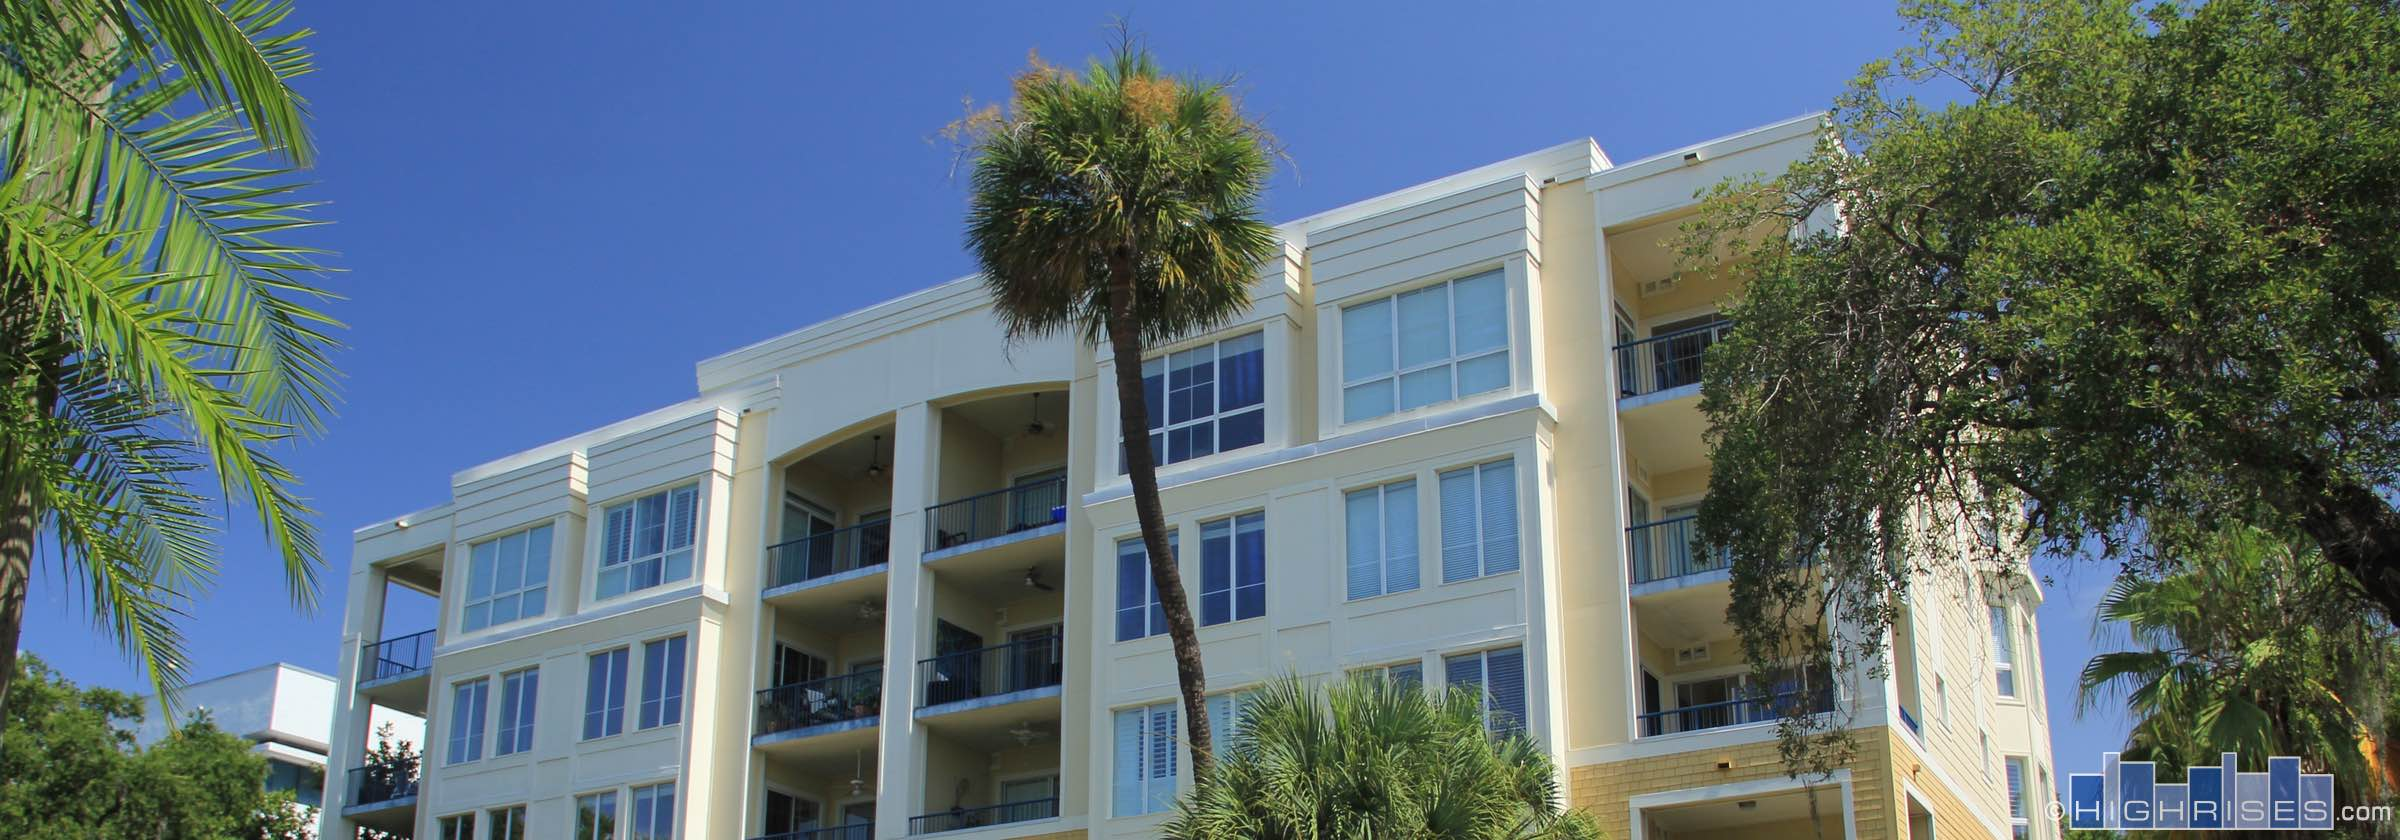 Christiansted Condos